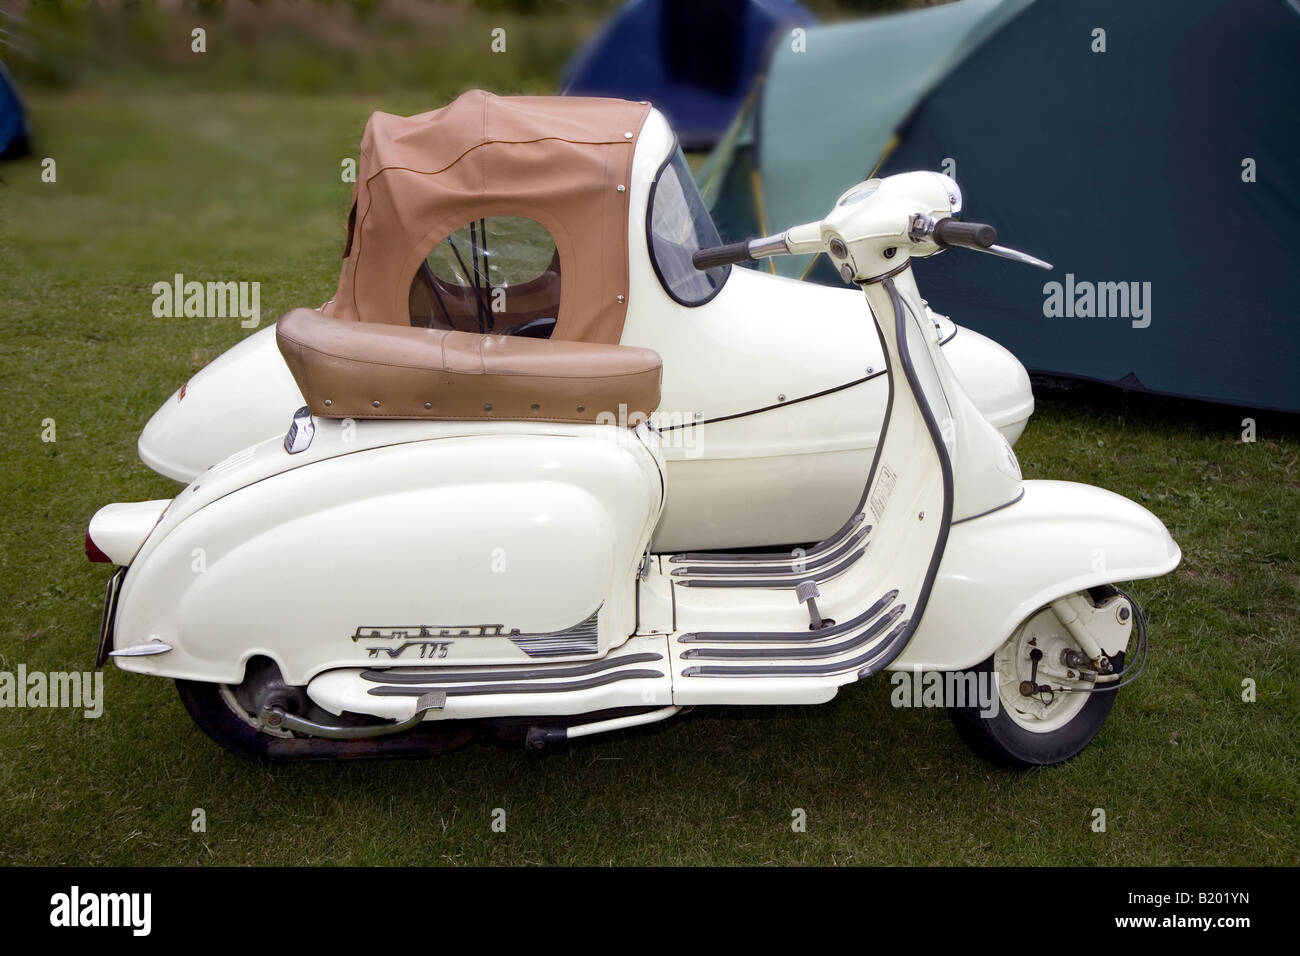 Motor Scooter And Sidecar Stock Photo Royalty Free Image